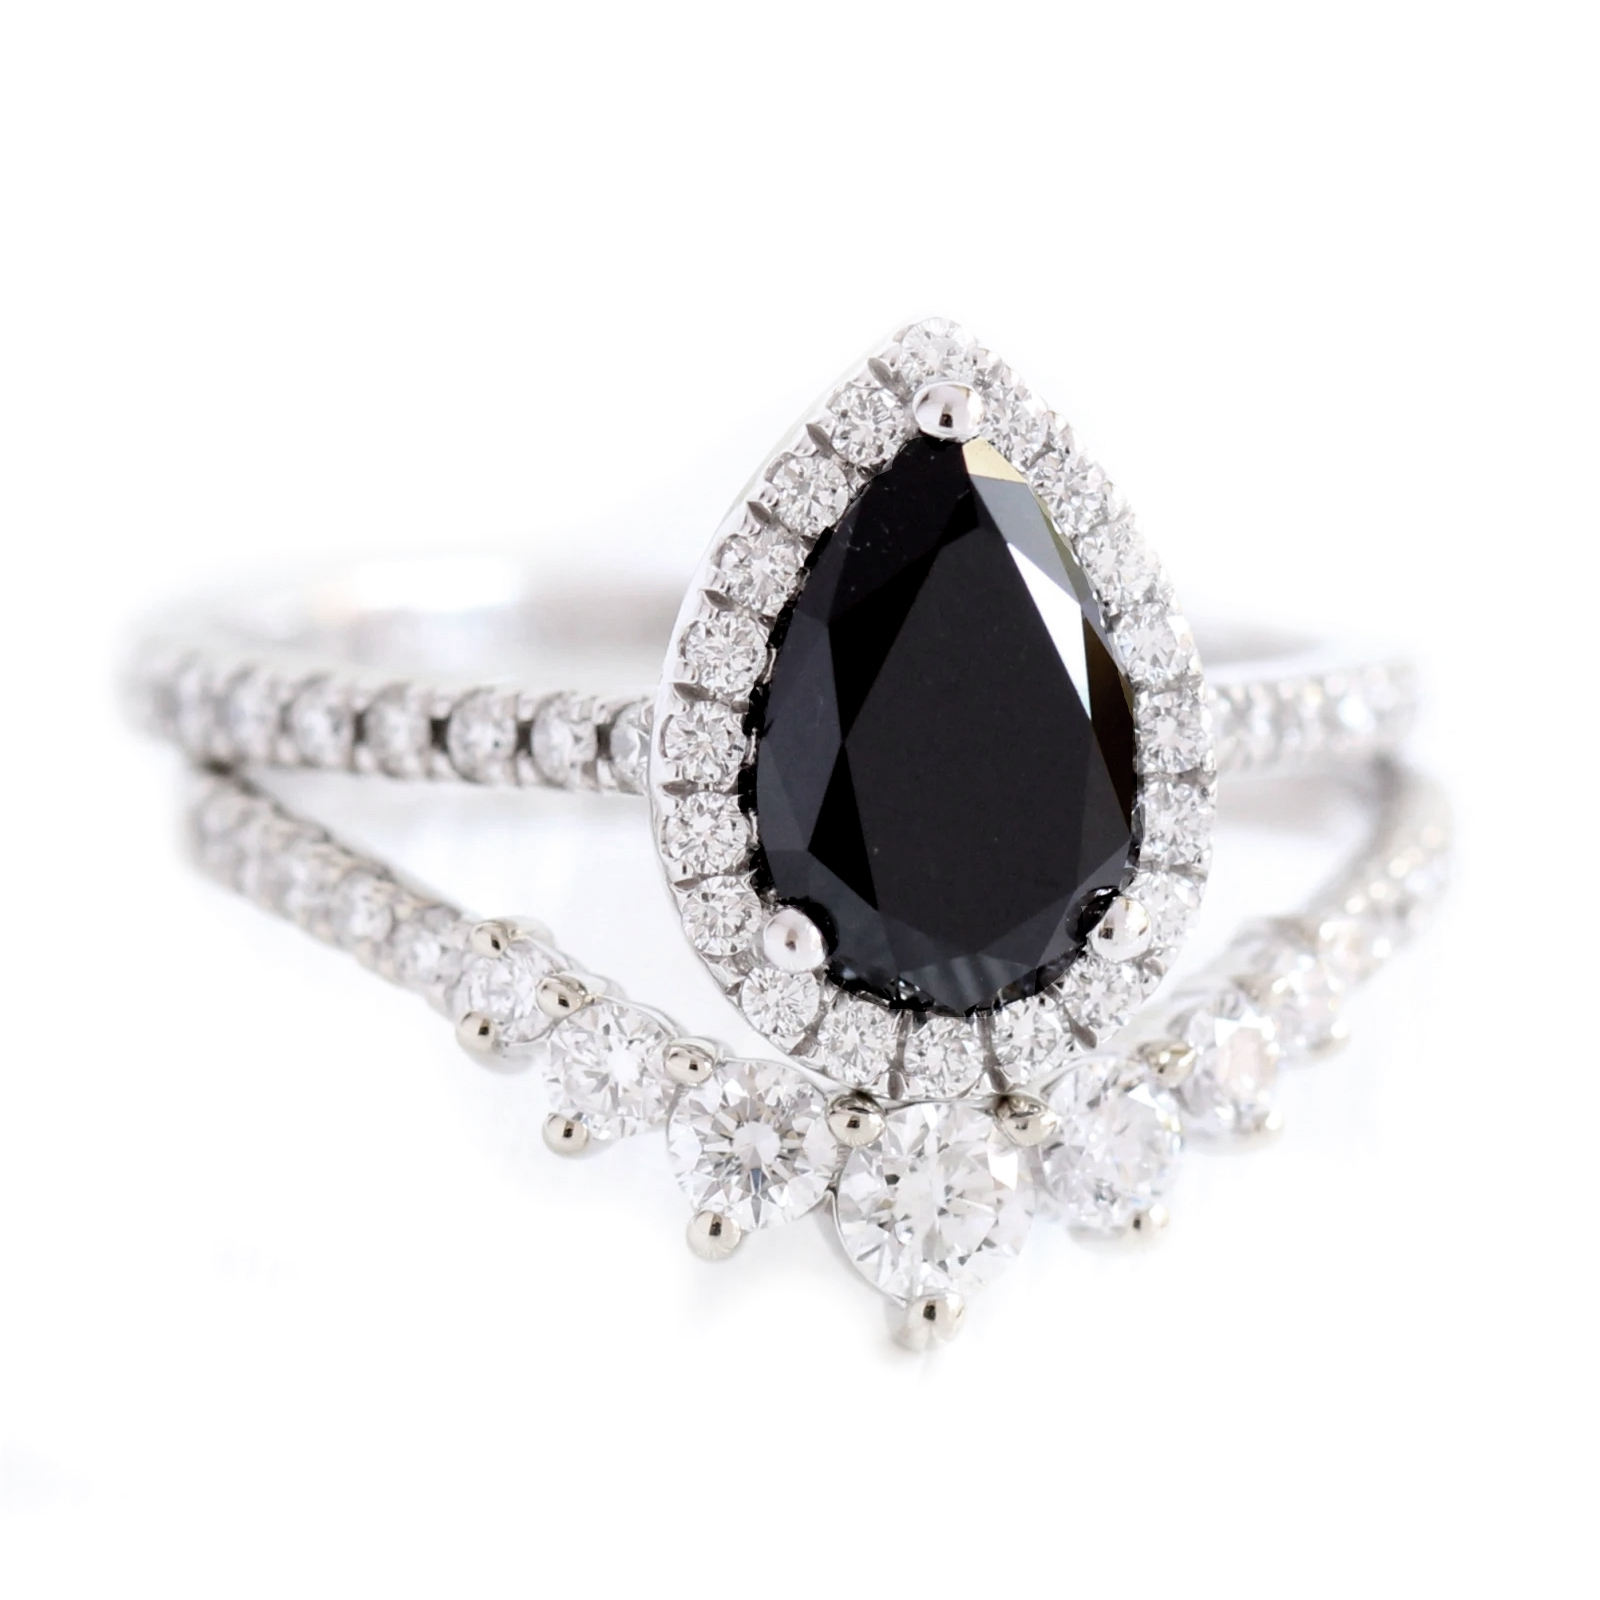 Tiara Ring 925 Sterling Silver Pear Cut Black Spinel Halo Engagement Ring Silver Gold Women Ring